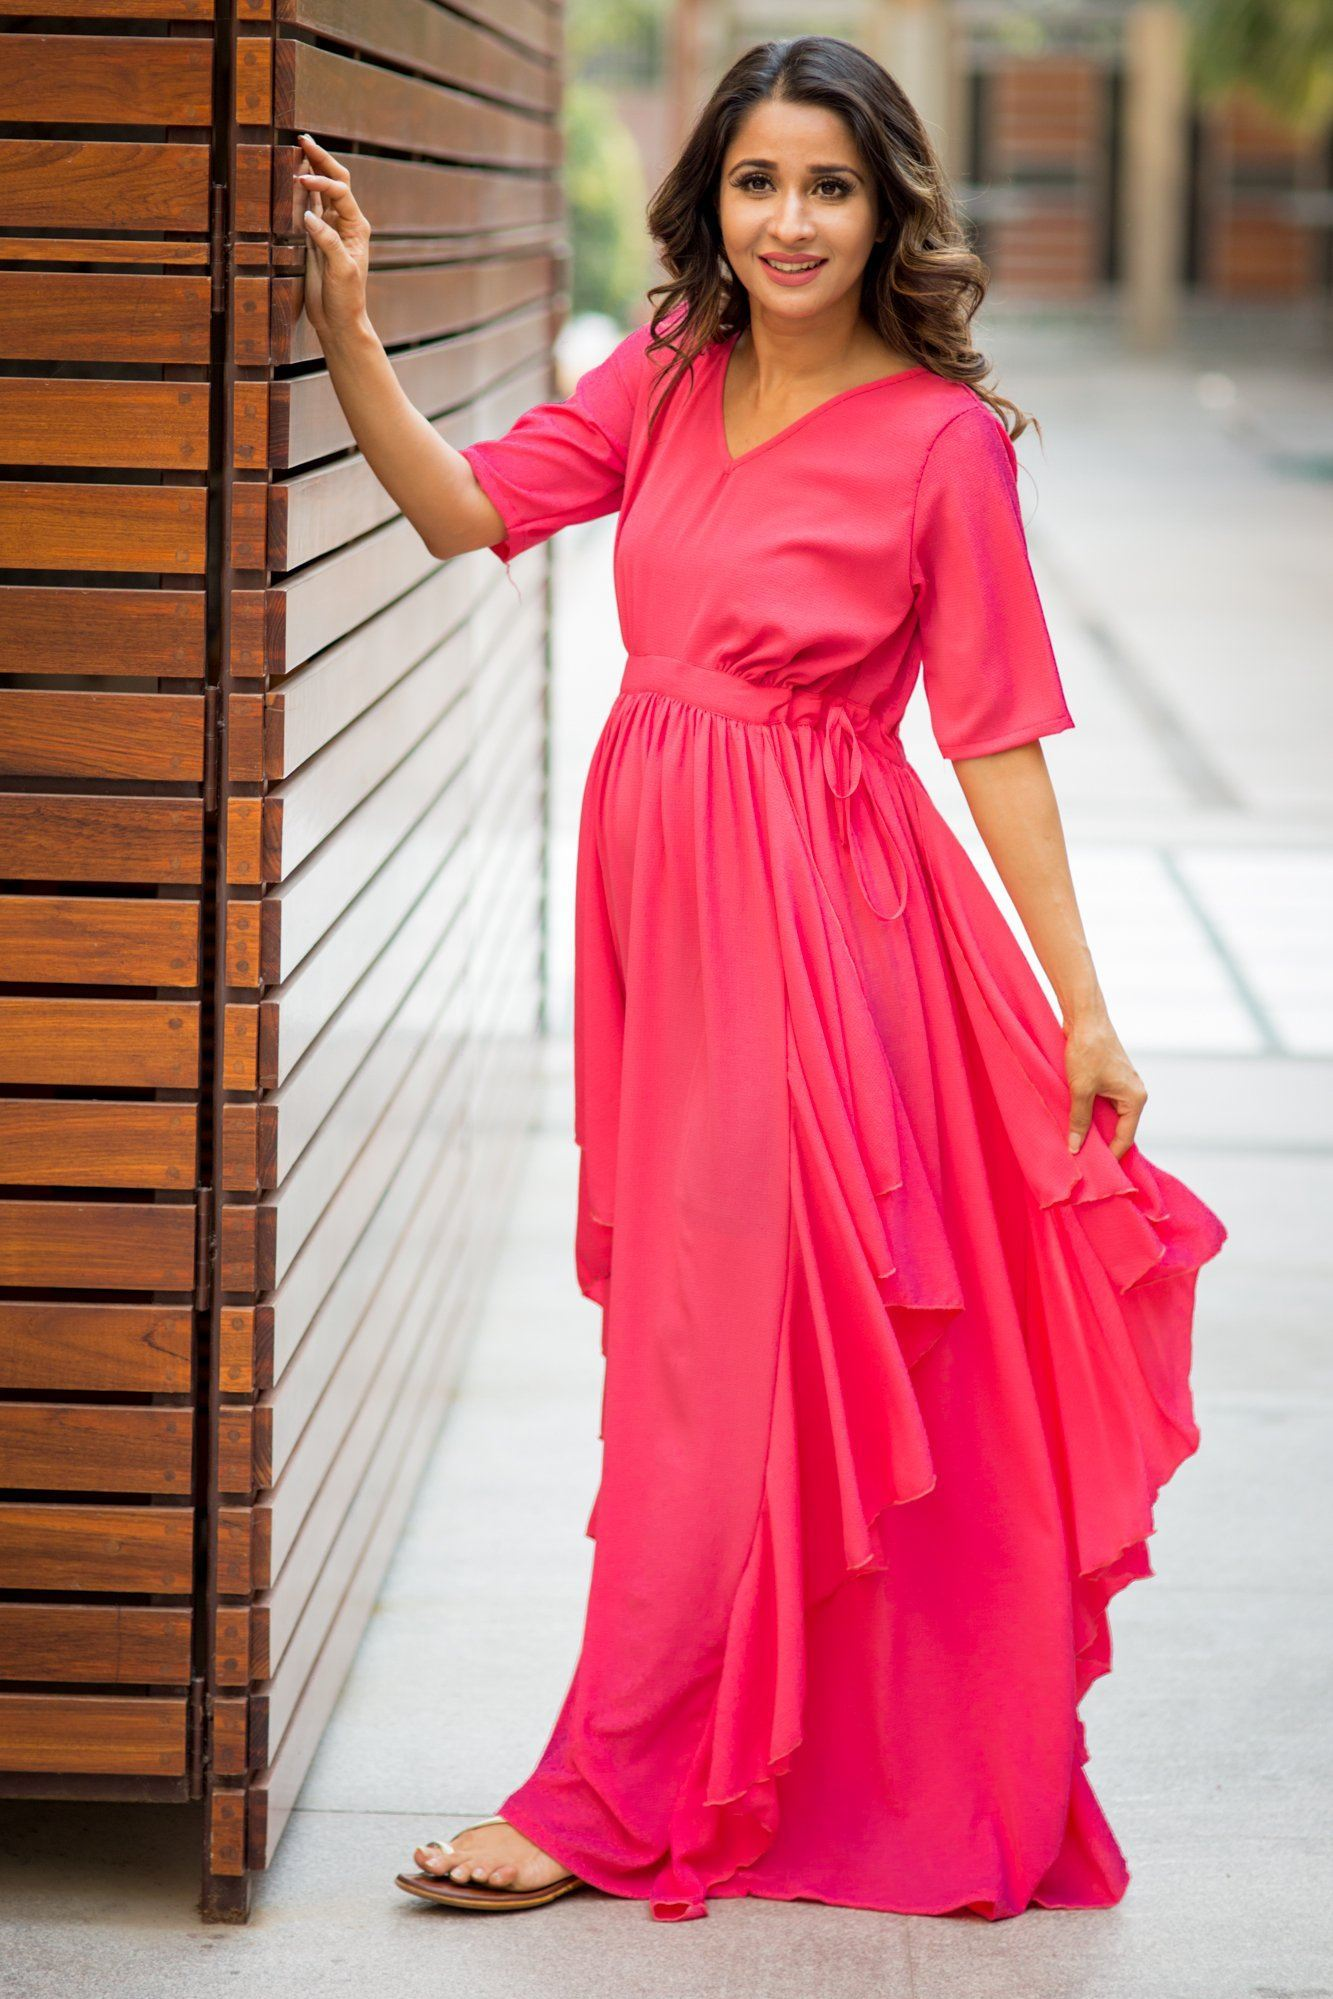 Buy online momzjoy maternity dresses pregnancy wear nursing clothes luxe pink blush bubble georgette maternity dress ombrellifo Images